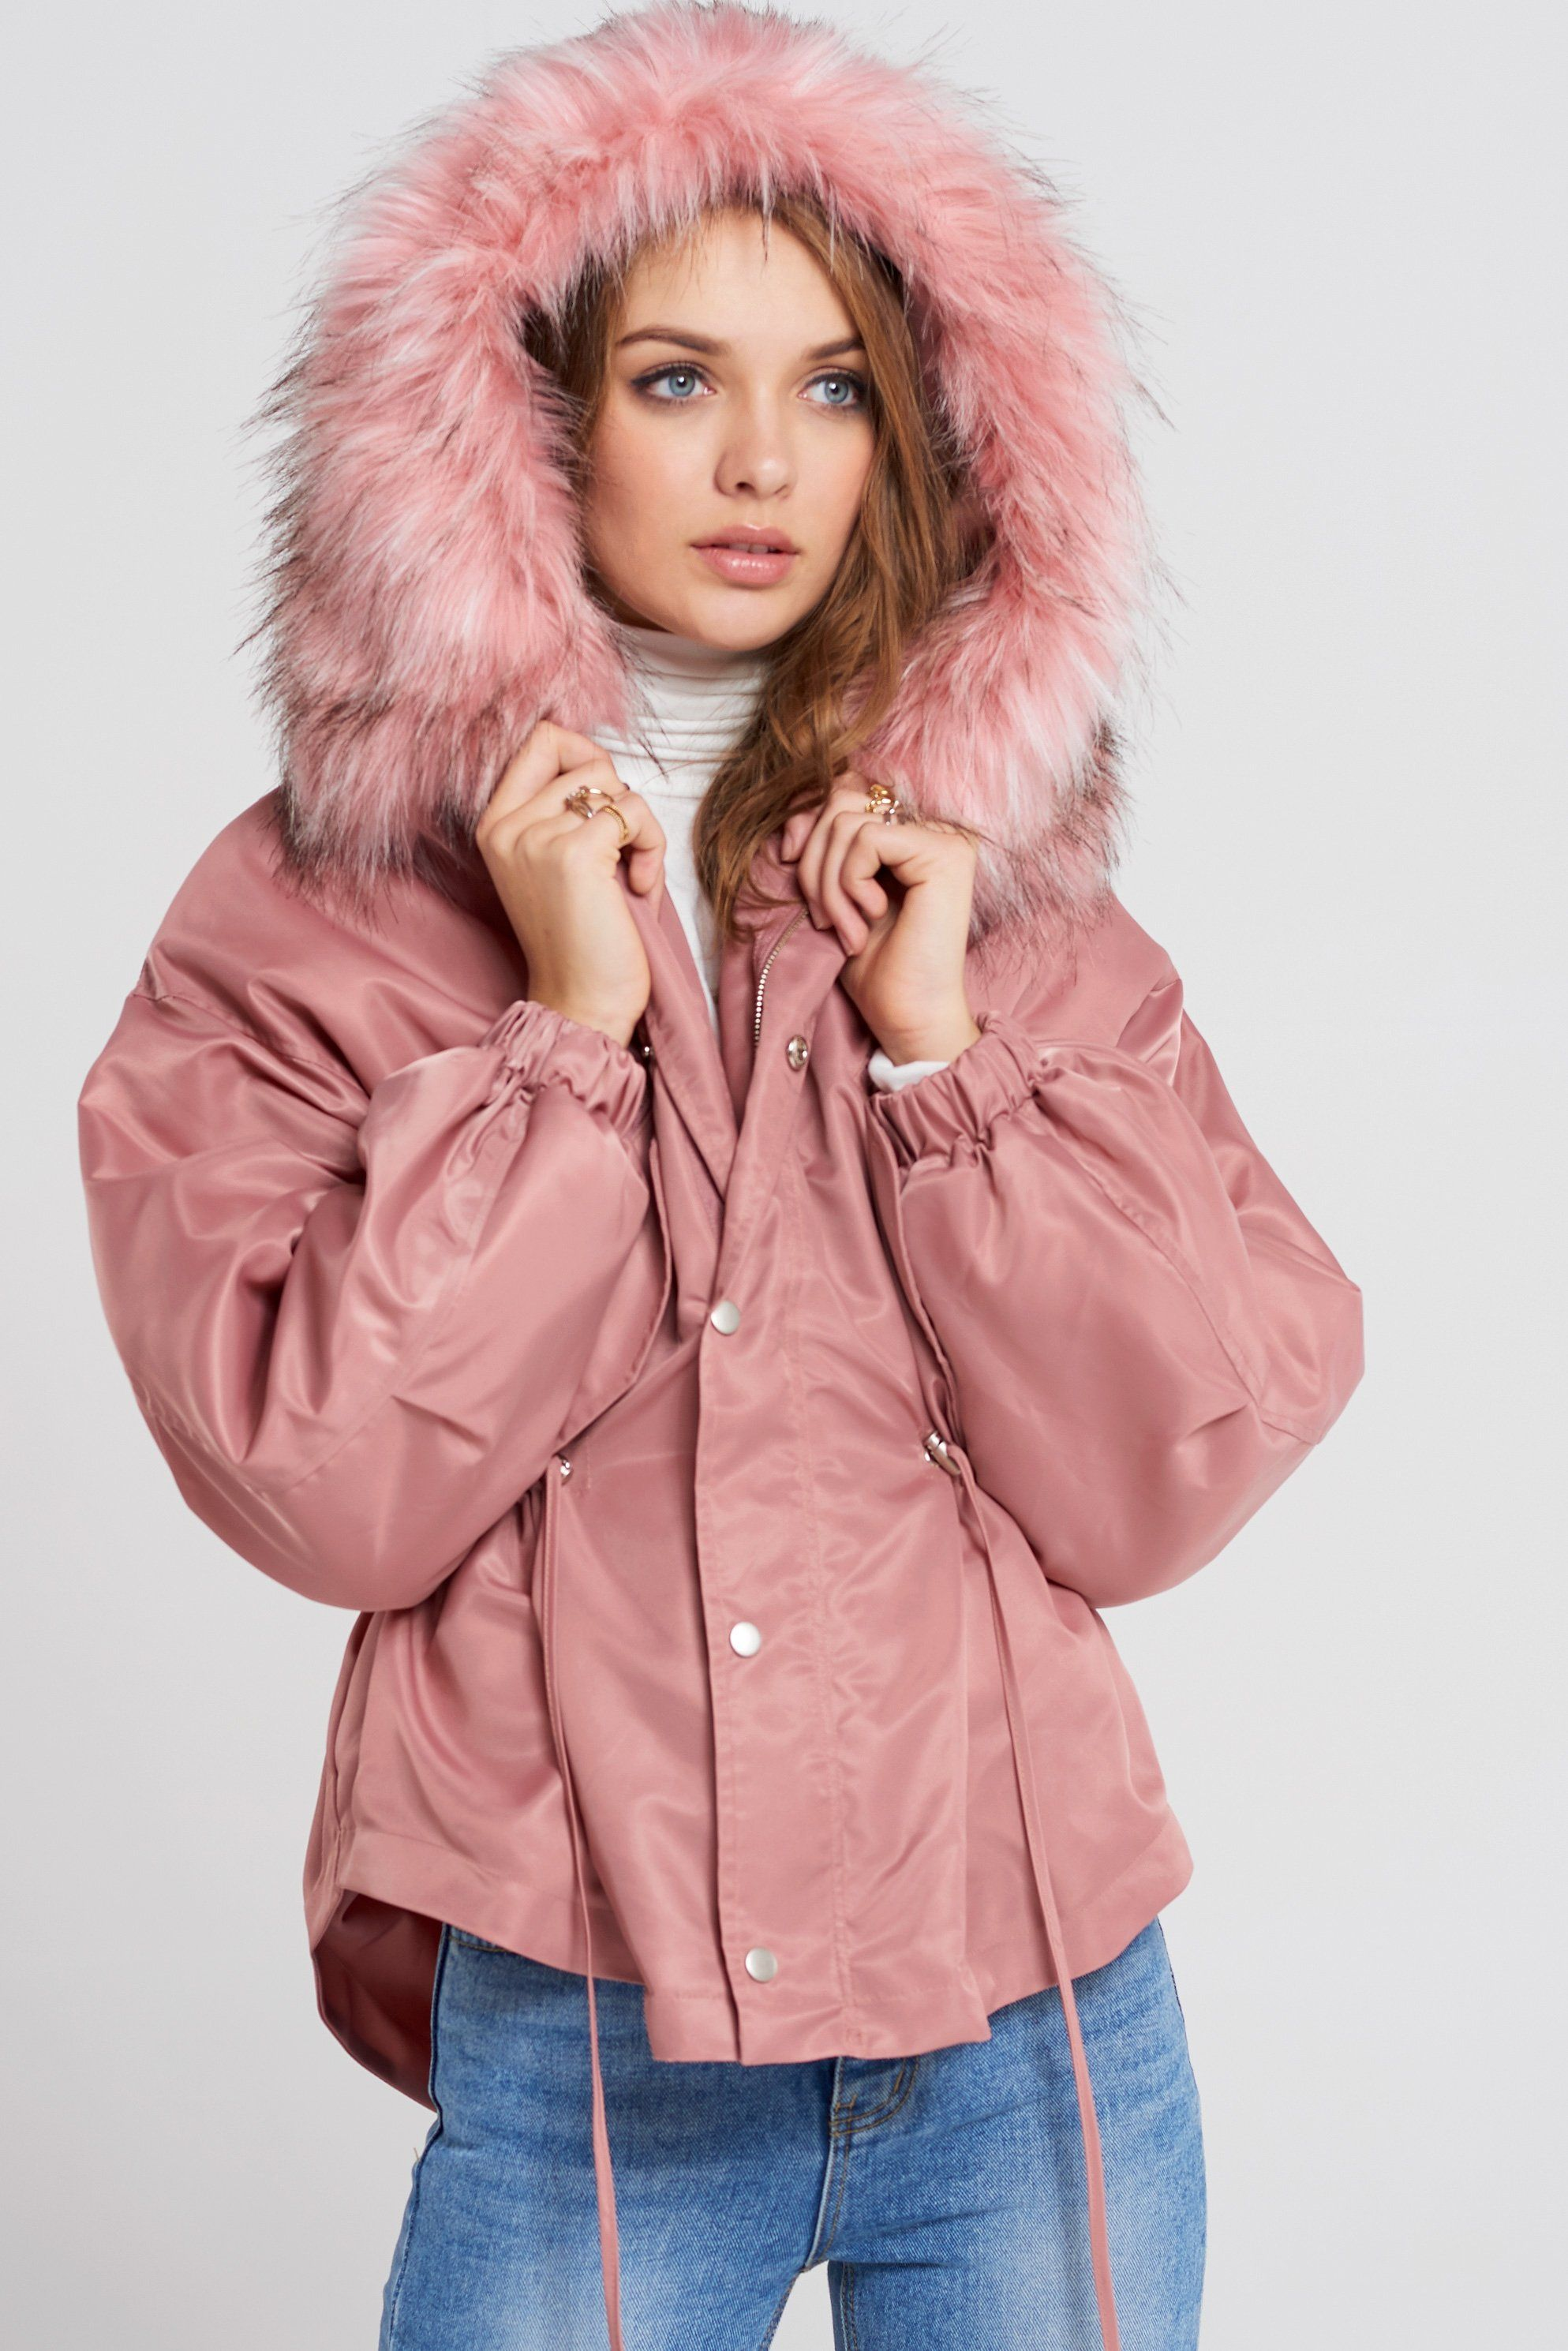 2bce639f517 Pinky Pink Padded Jacket | Womens Coats | Padded jacket, Jackets ...